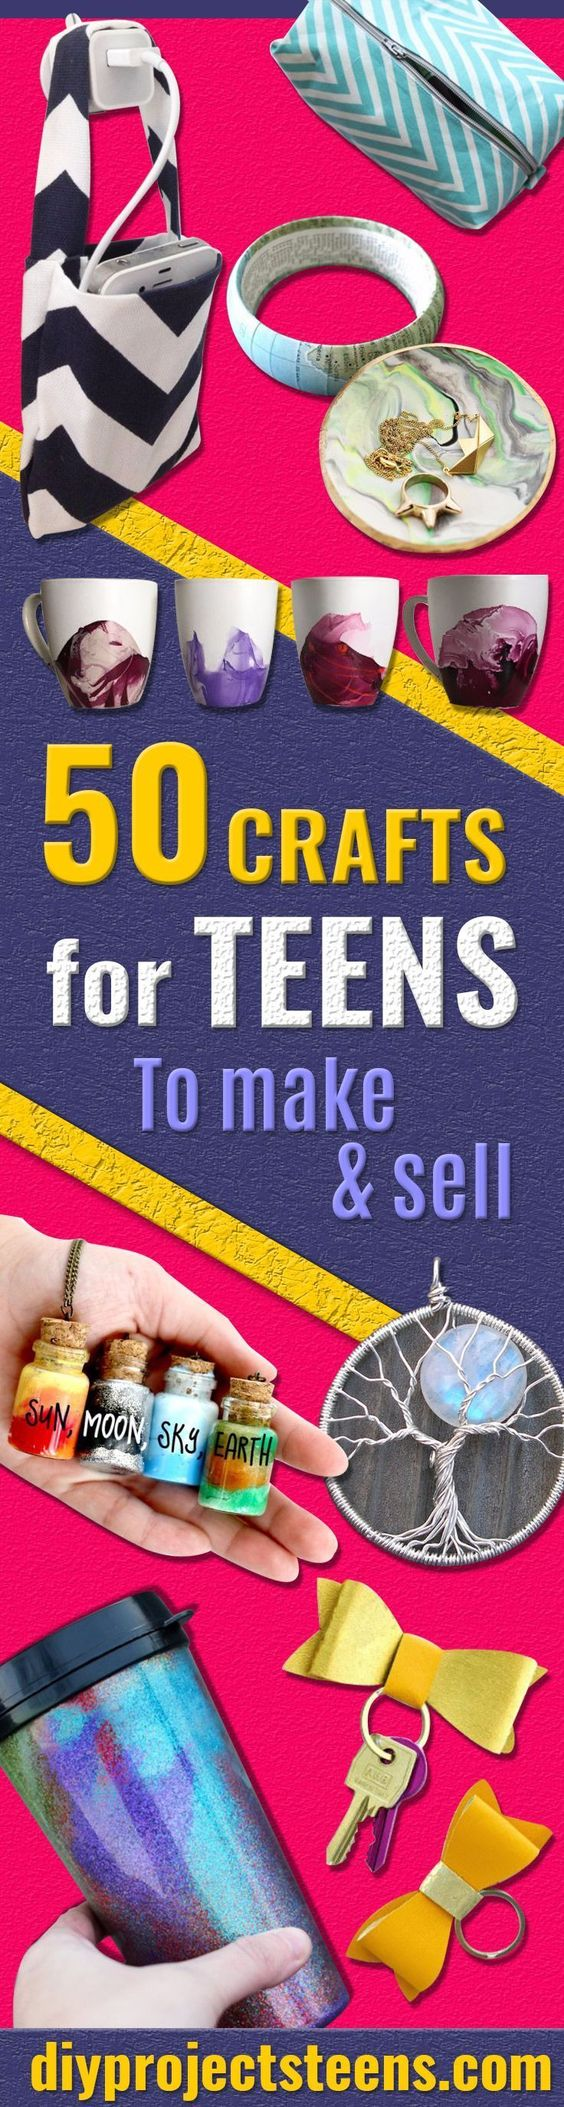 50 crafts for teens to make and sell pinterest project ideas